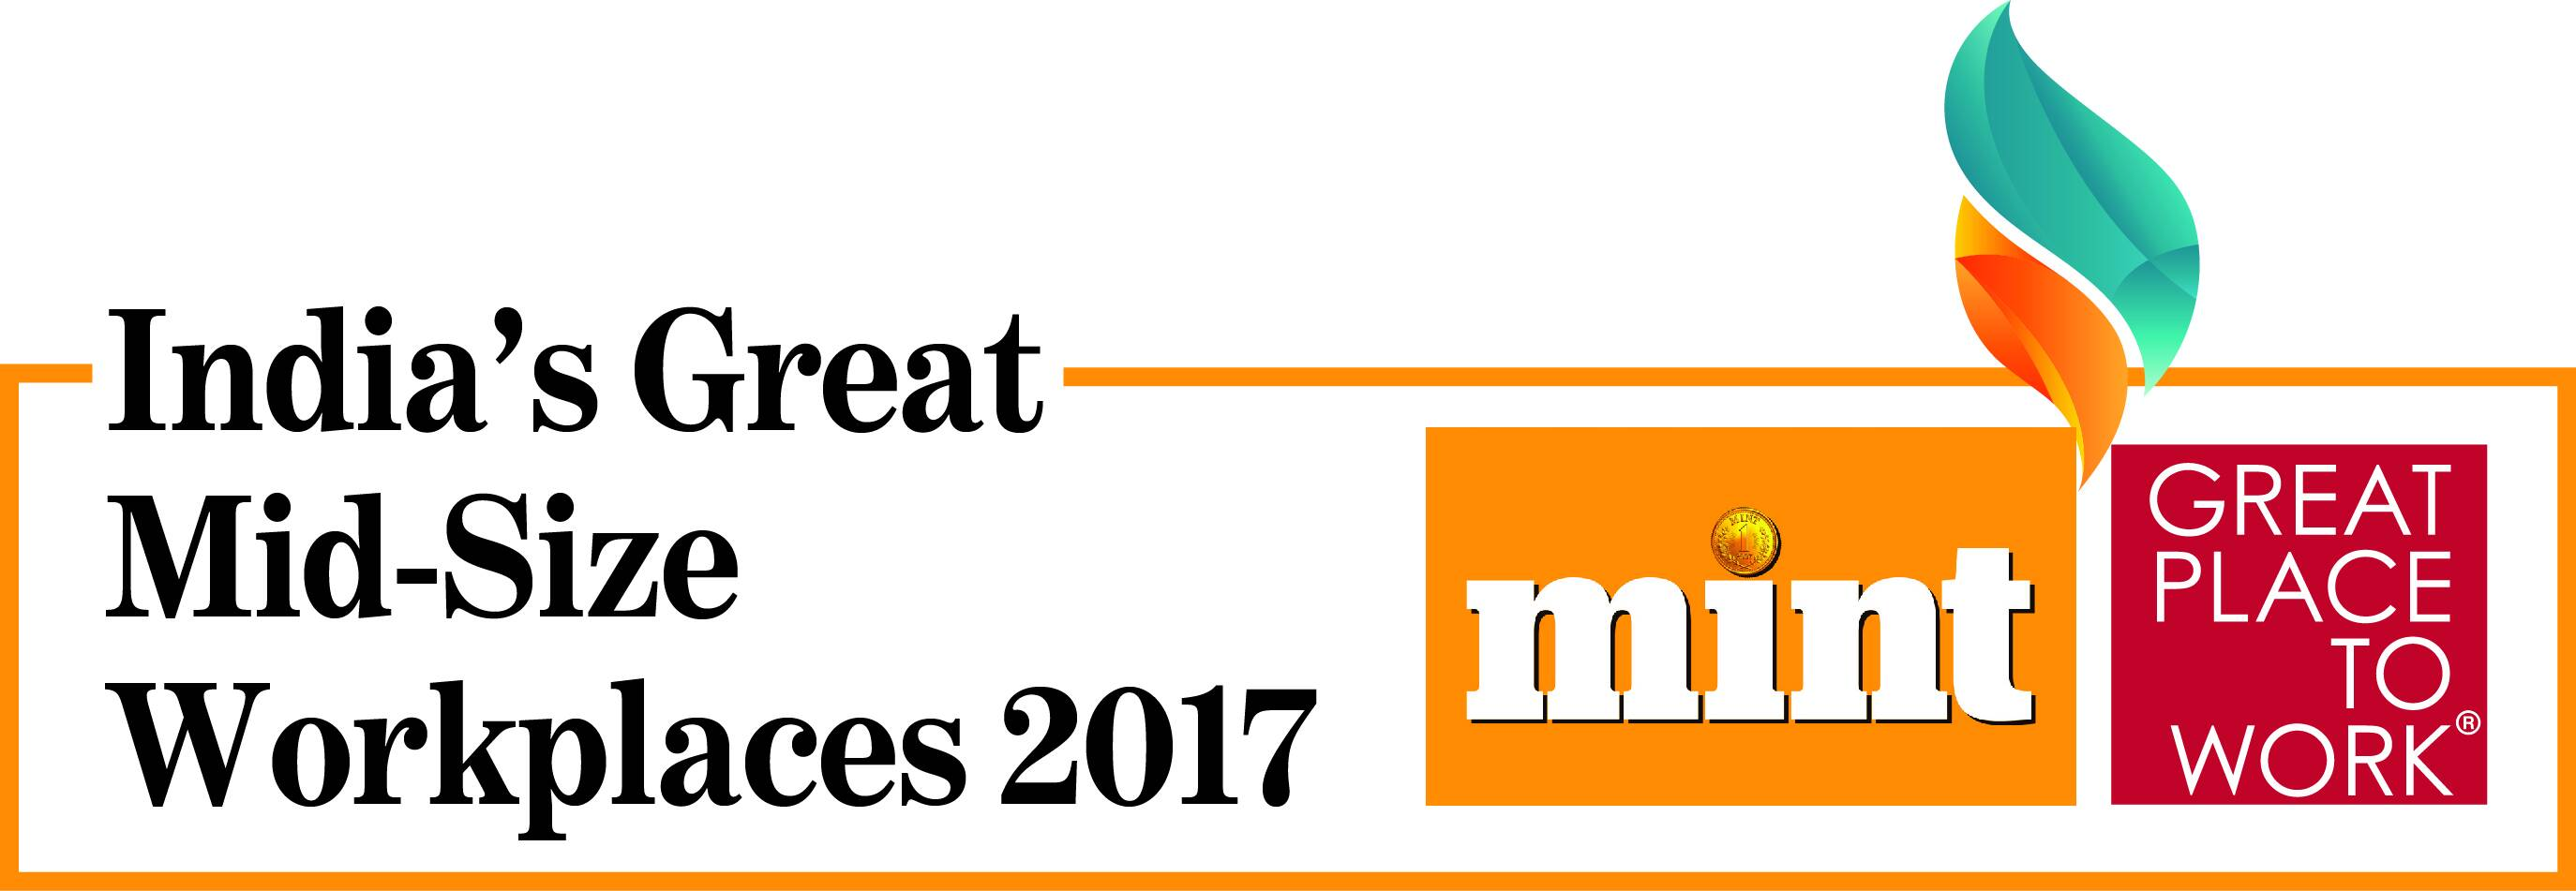 TO THE NEW Recognized by Great Place To Work, 2017